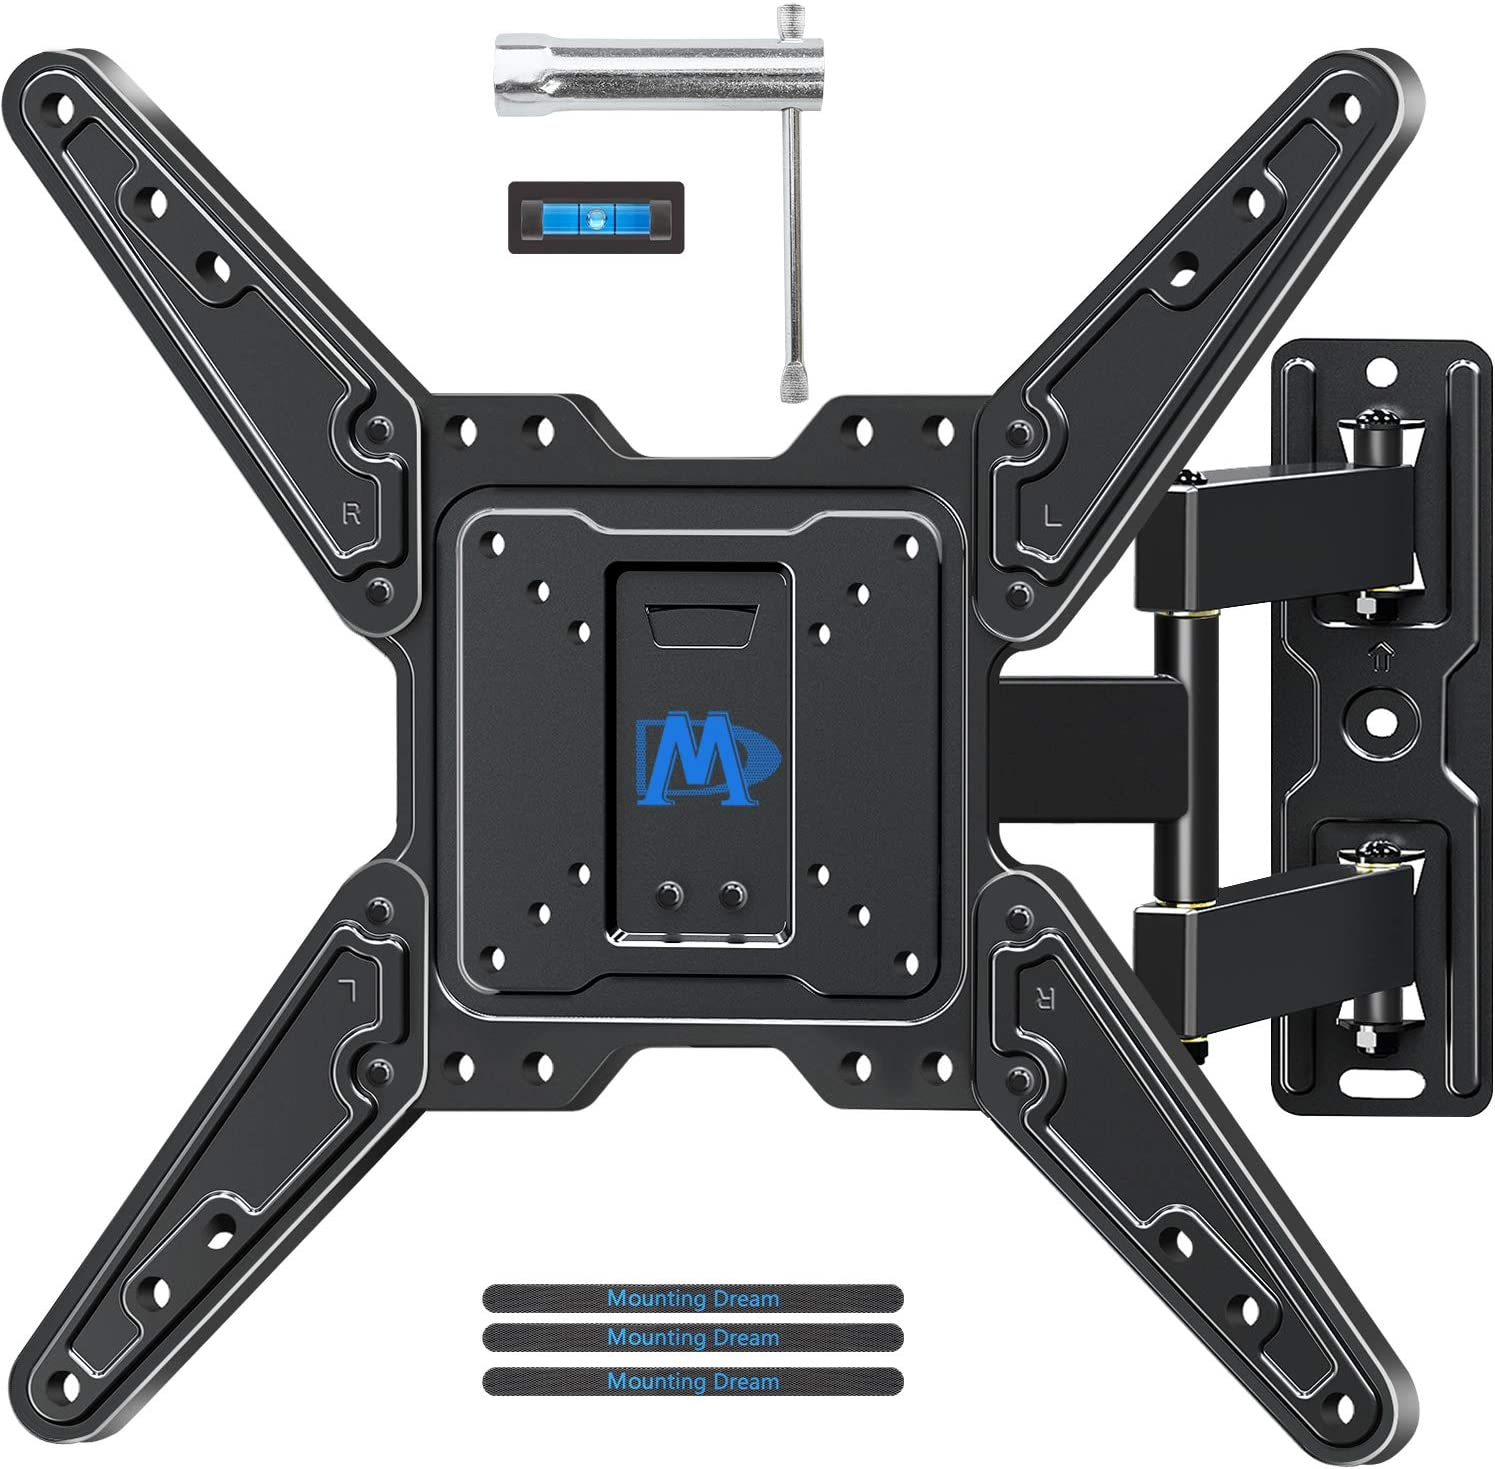 Mounting Dream TV Mount for Most 26-55 Inch TVs, Full Motion TV Wall Mount with Perfect Center Design on Single Stud Articulating Mount Max VESA 400x400mm up to 77 LBS, MD2413-MX